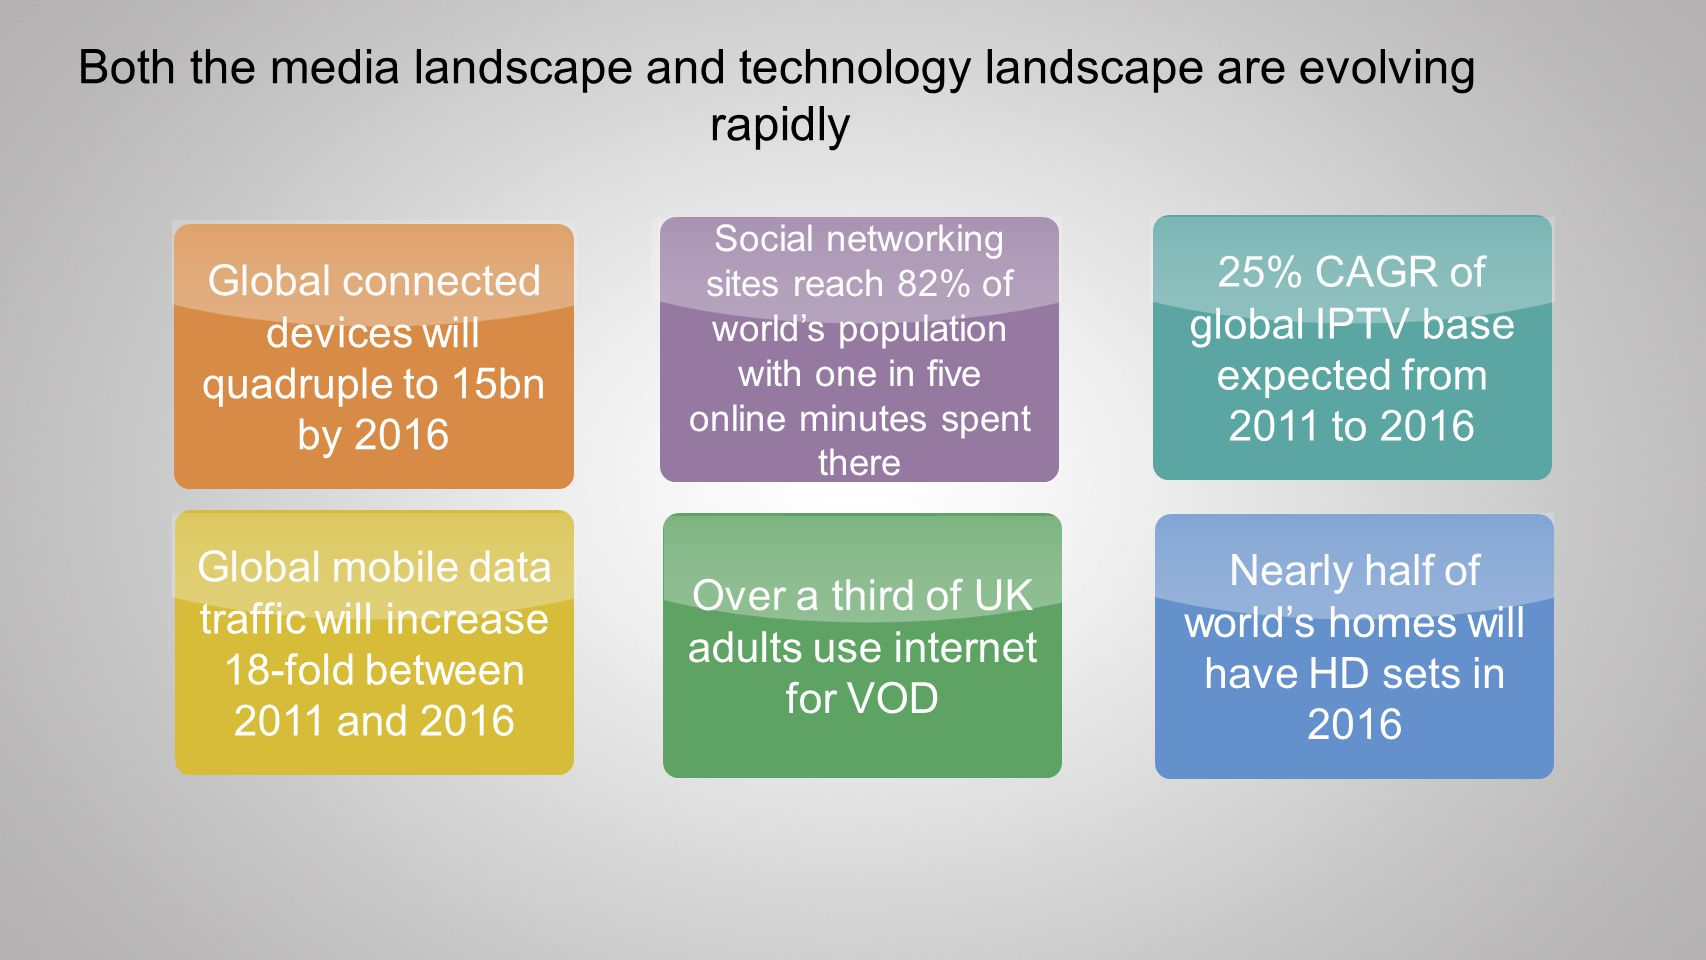 Nearly half of worlds homes will have HD sets in 2016 Over a third of UK adults use internet for VOD Global mobile data traffic will increase 18-fold between 2011 and 2016 Global connected devices will quadruple to 15bn by 2016 25% CAGR of global IPTV base expected from 2011 to 2016 Social networking sites reach 82% of worlds population with one in five online minutes spent there Both the media landscape and technology landscape are evolving rapidly